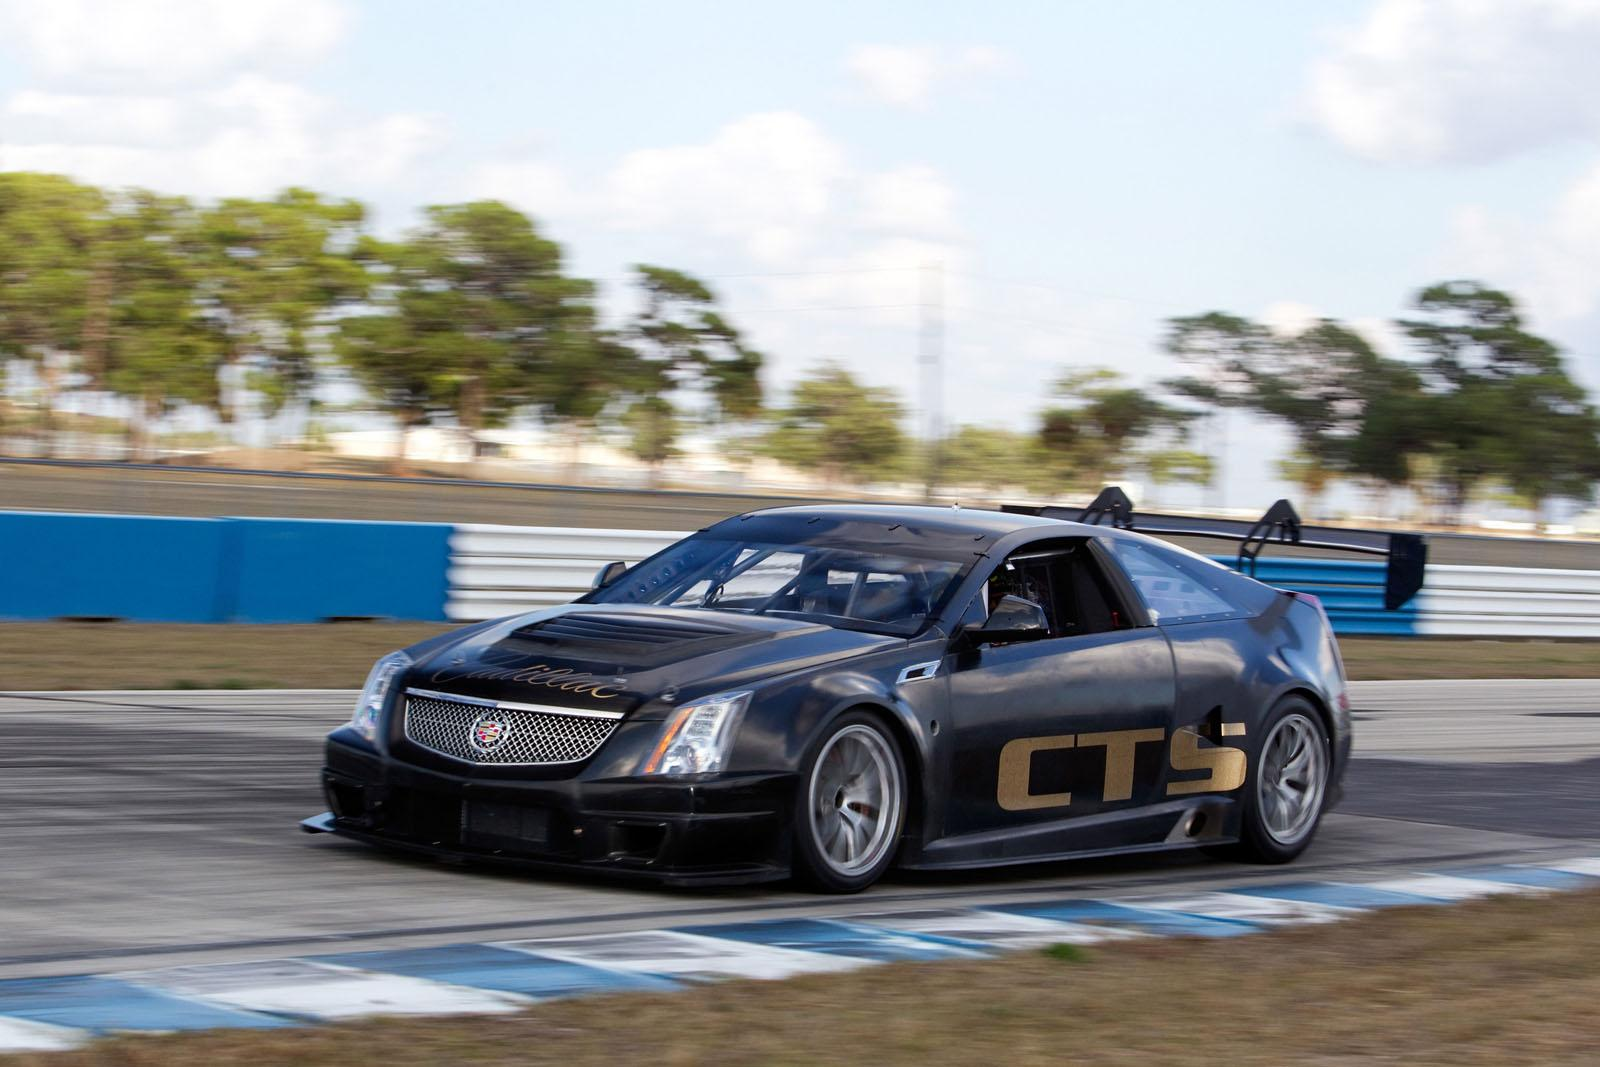 Cadillac CTS-V Racing Coupe - Picture 51310